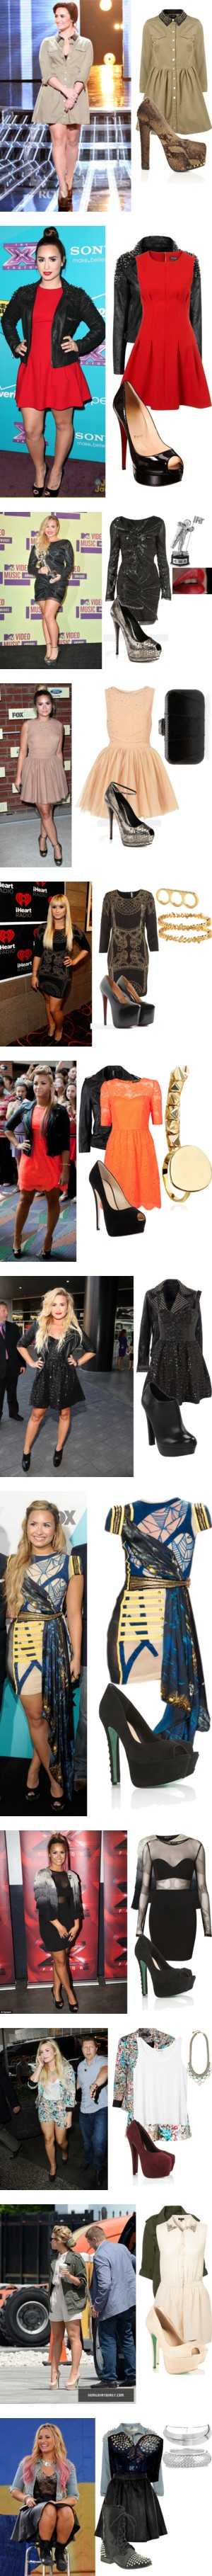 """""""Demi Lovato♥ Style:)"""" by beliebersforeverrss ❤ liked on Polyvore"""